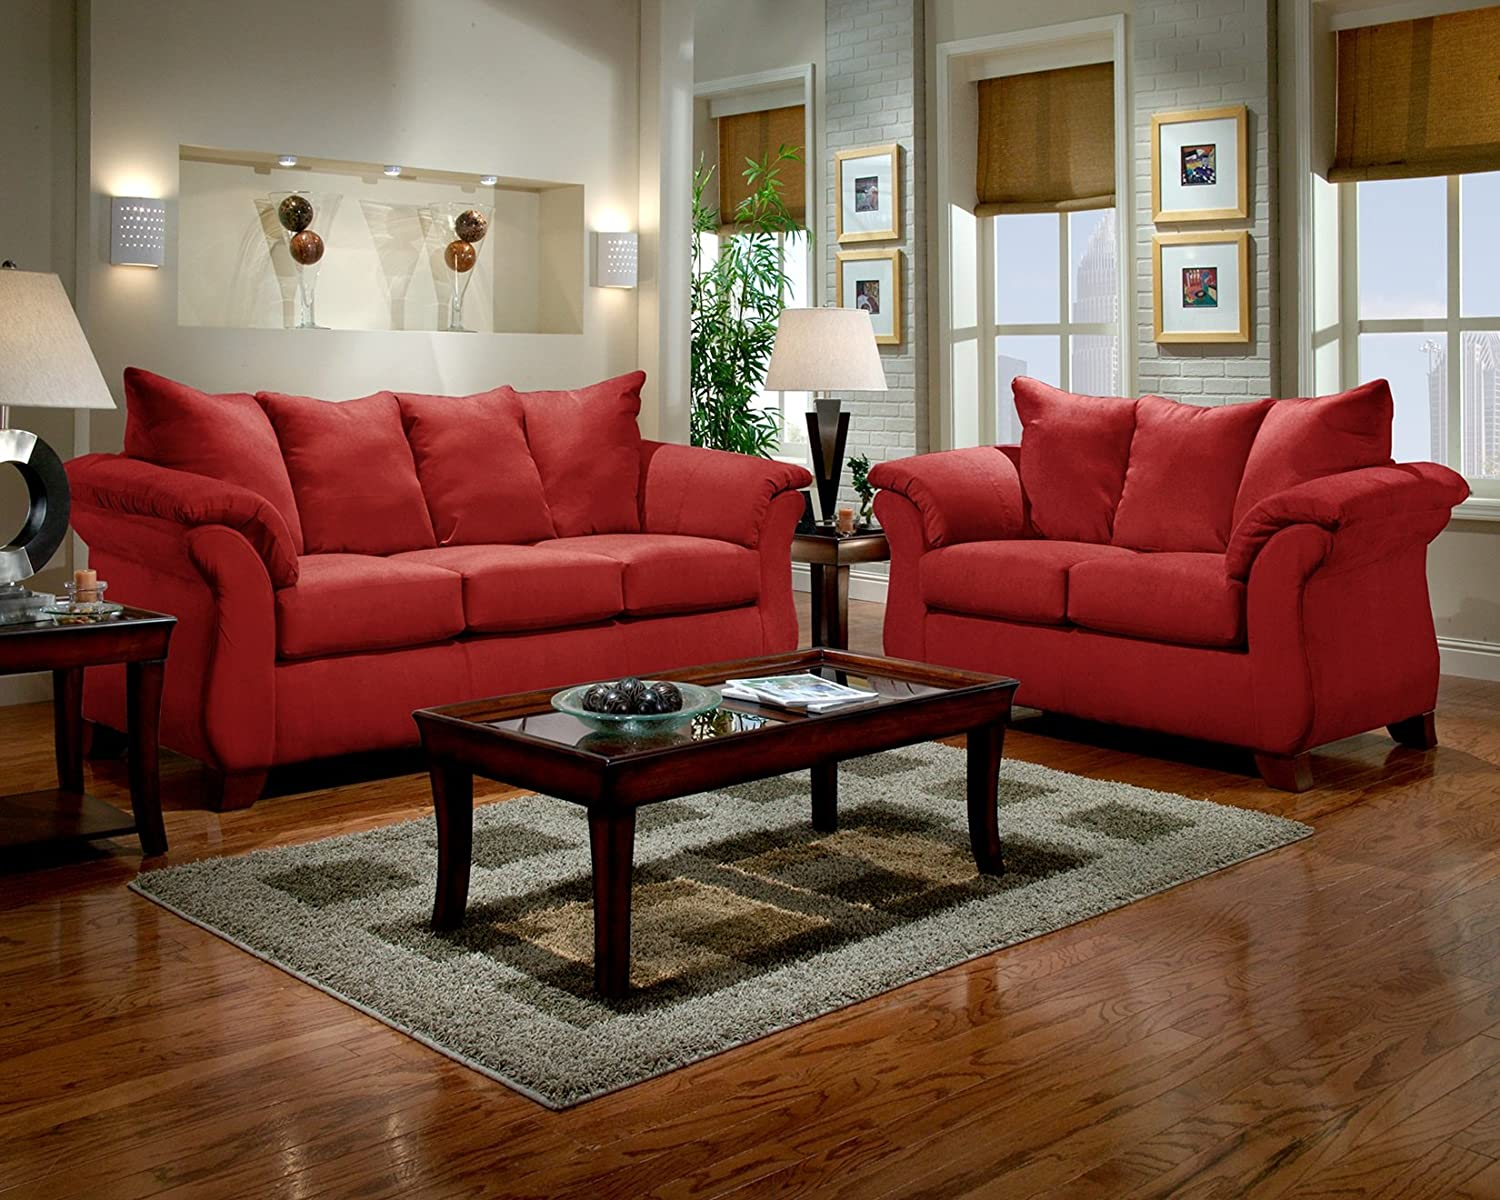 Amazon com roundhill furniture sensations microfiber pillow back sofa and loveseat set red kitchen dining